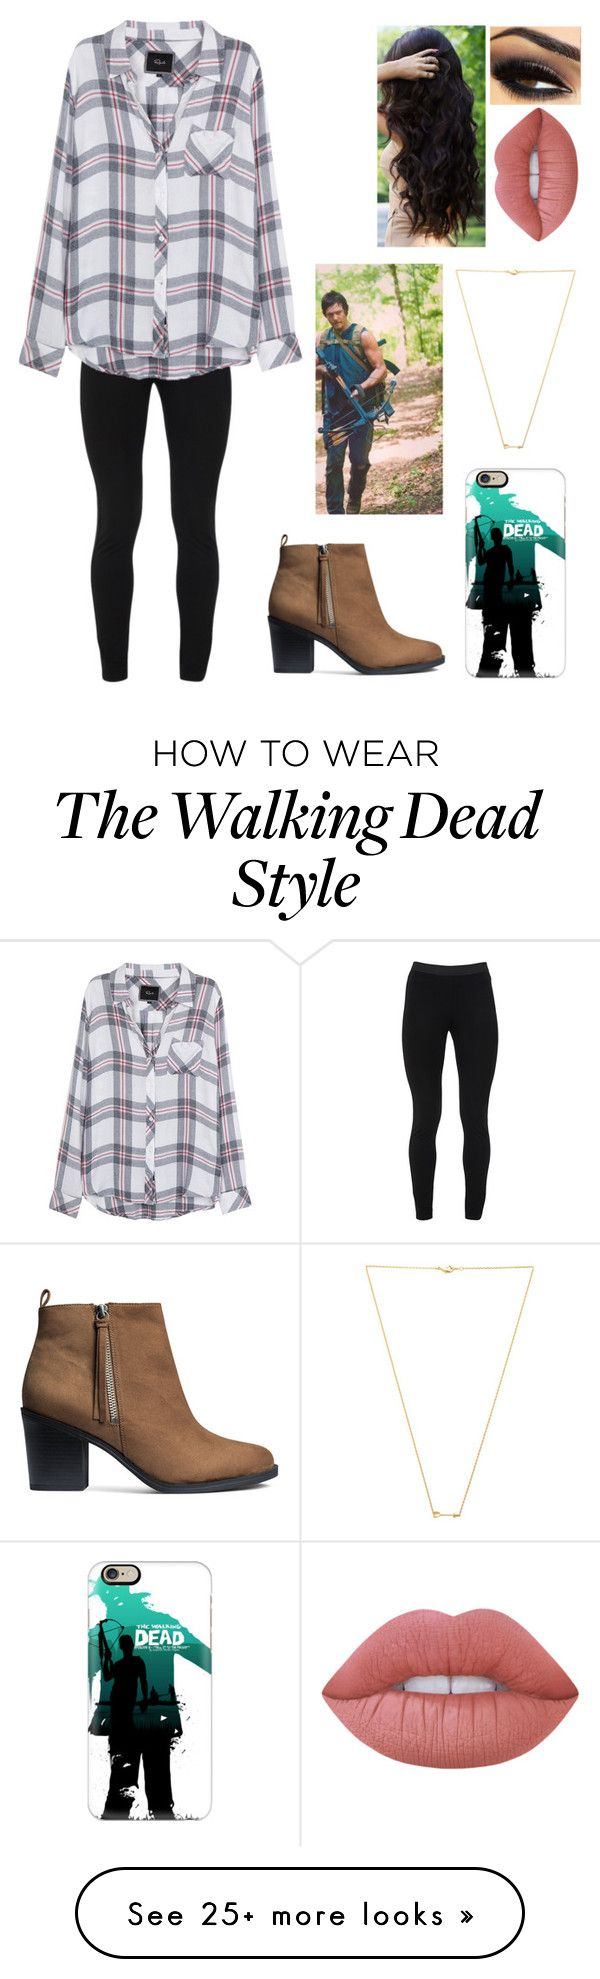 """The Walking dead has me stressed out"" by blessed-with-beauty-and-rage on Polyvore featuring Peace of Cloth, Rails, Casetify, H&M, Lime Crime and Wanderlust + Co"